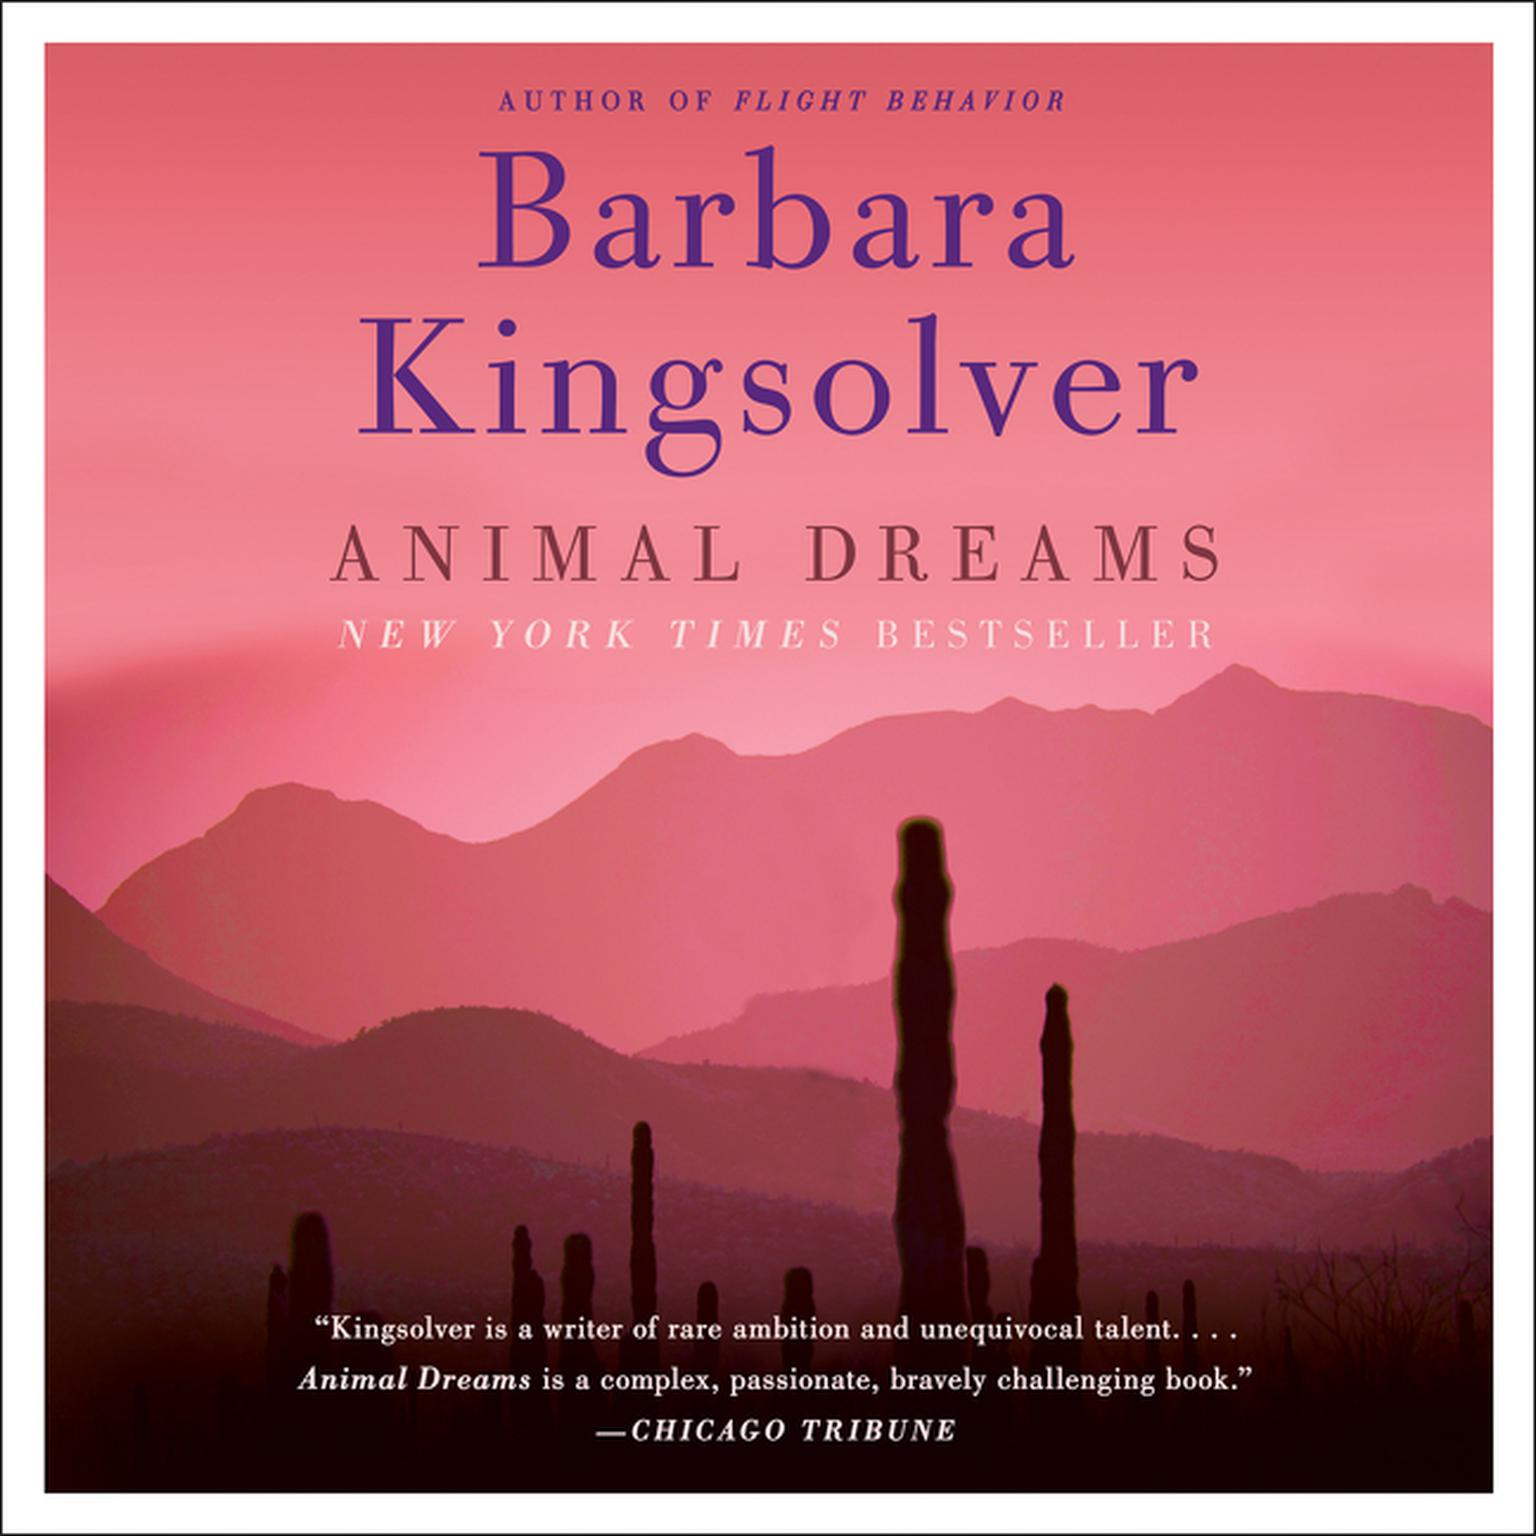 a character analysis of barbara kingsolver alices animal dreams Complete summary of barbara kingsolver's animal dreams enotes plot summaries cover all the analysis and characters so you can understand them on.